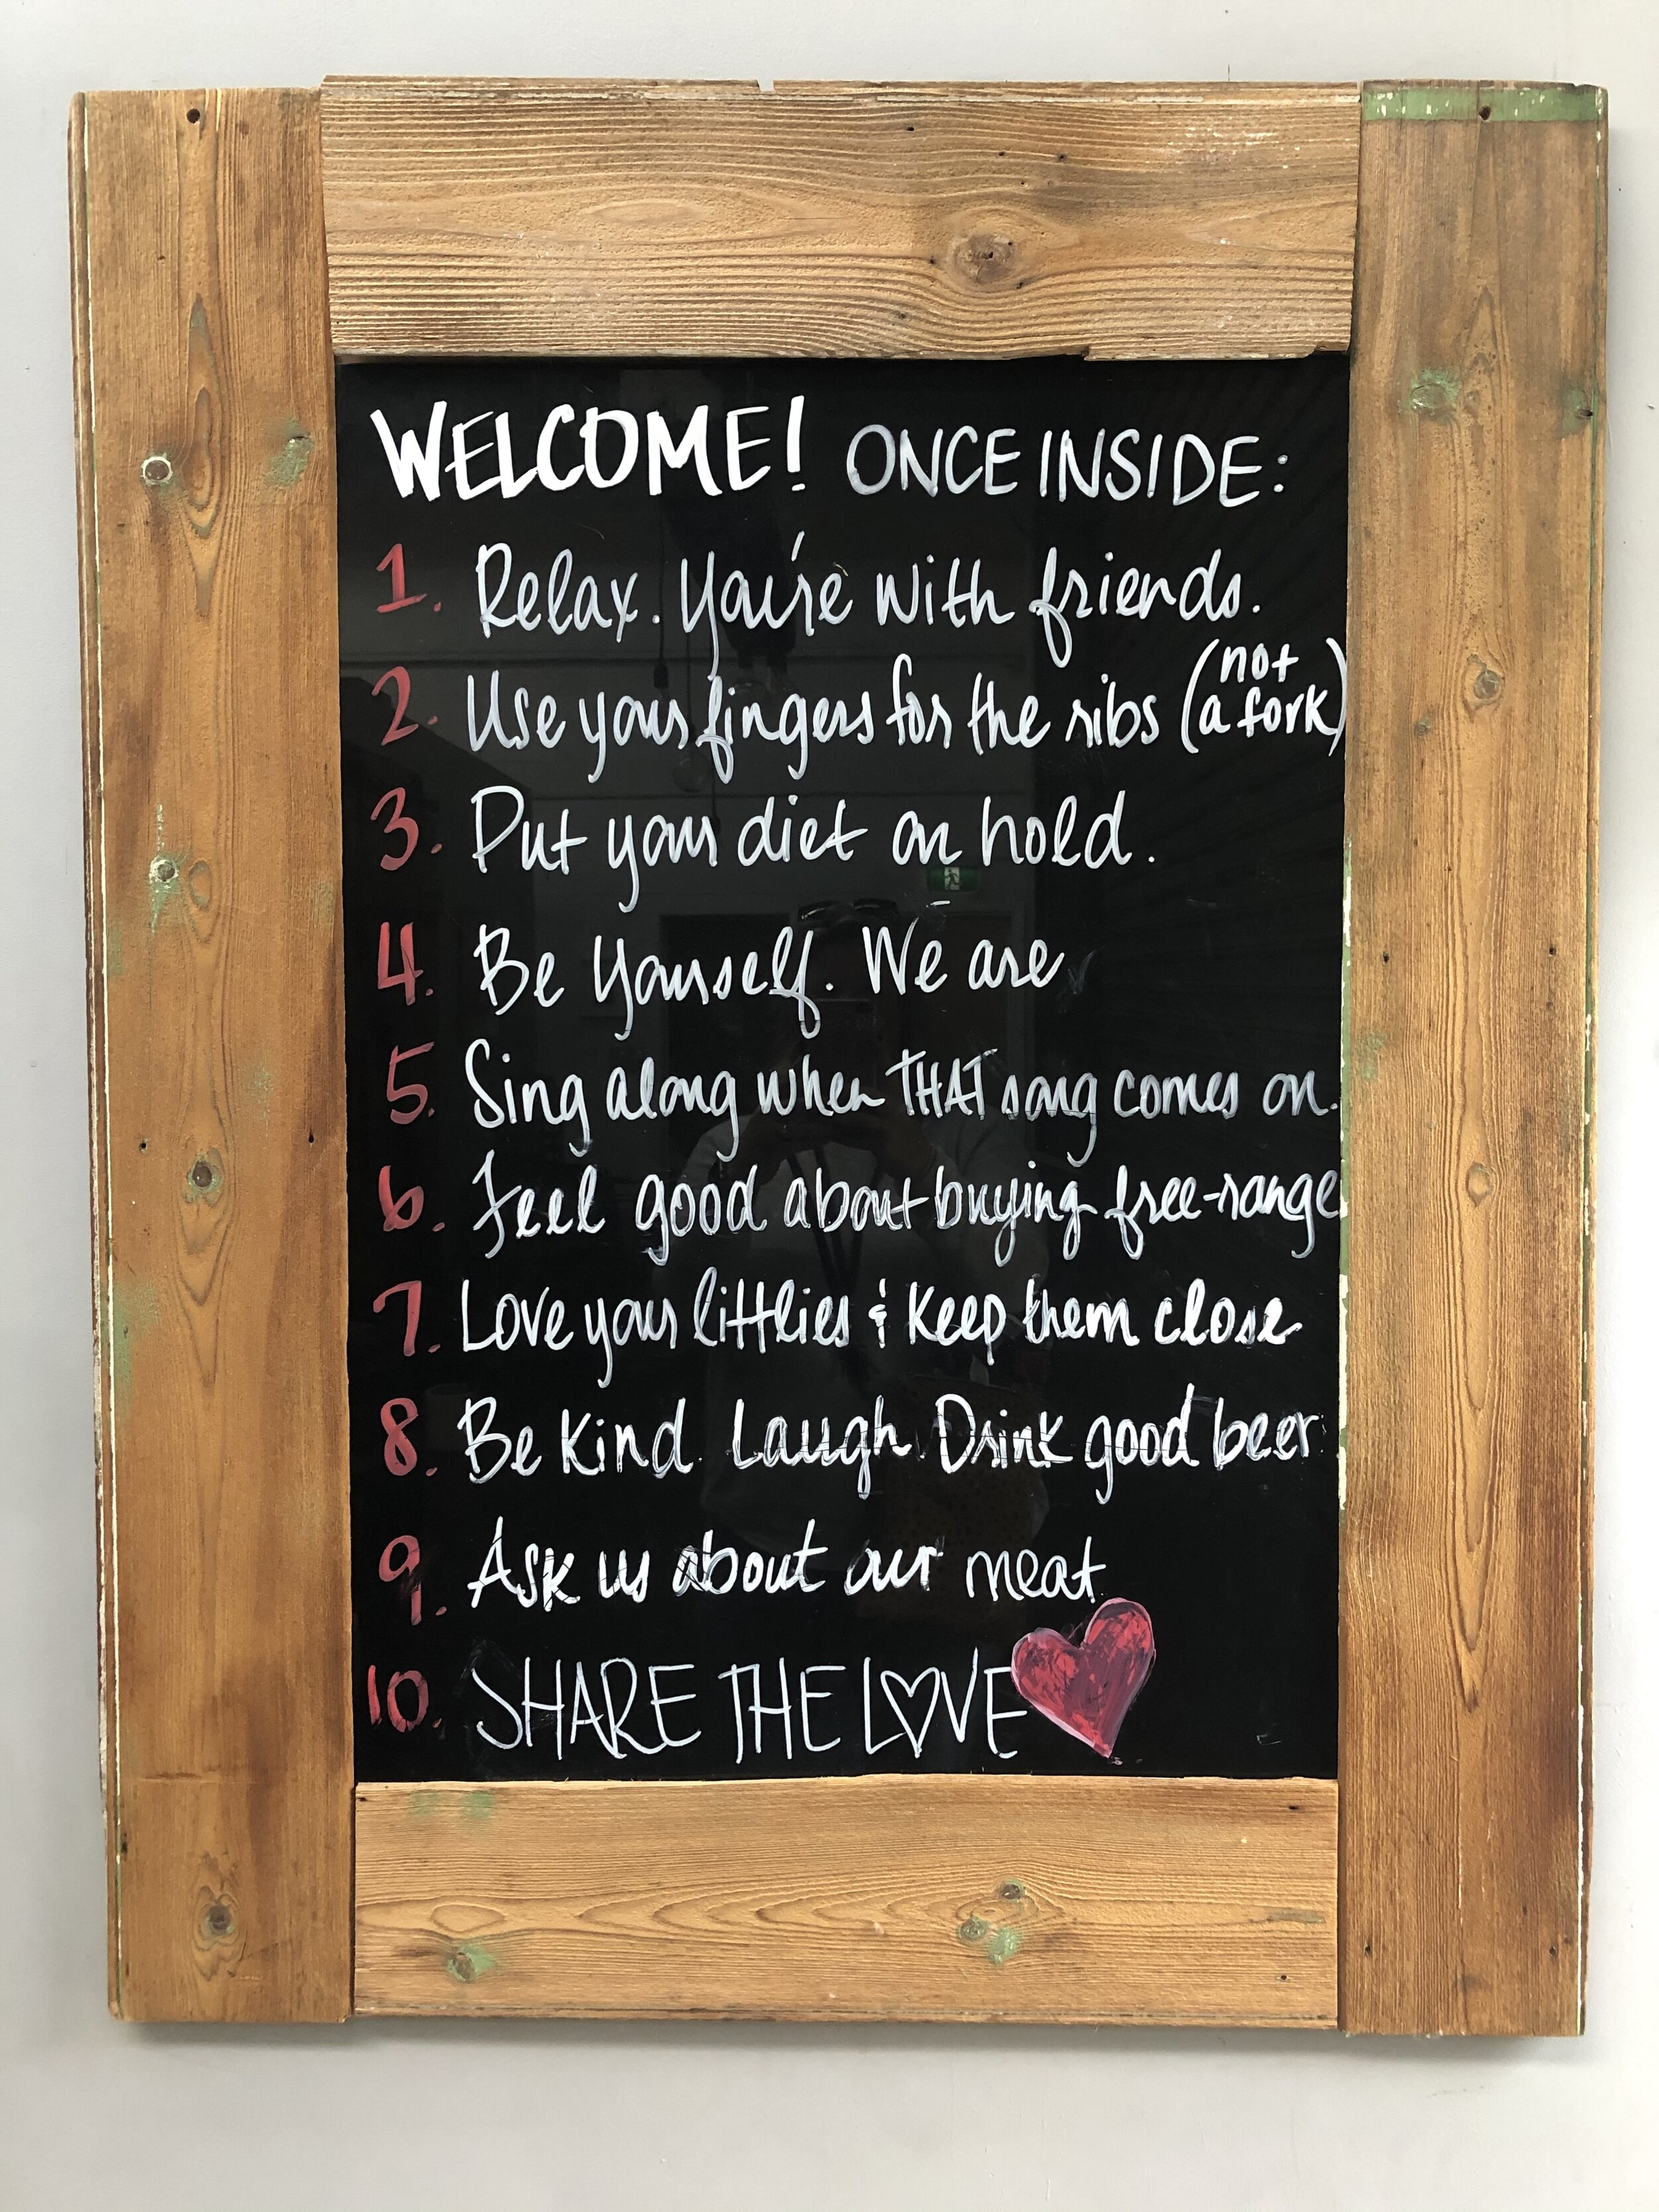 Rustic Wood Sign WE'RE NOT STEP WE'RE NOT HALF WE'RE SIMPLY FAMILY This Is Us ❤️